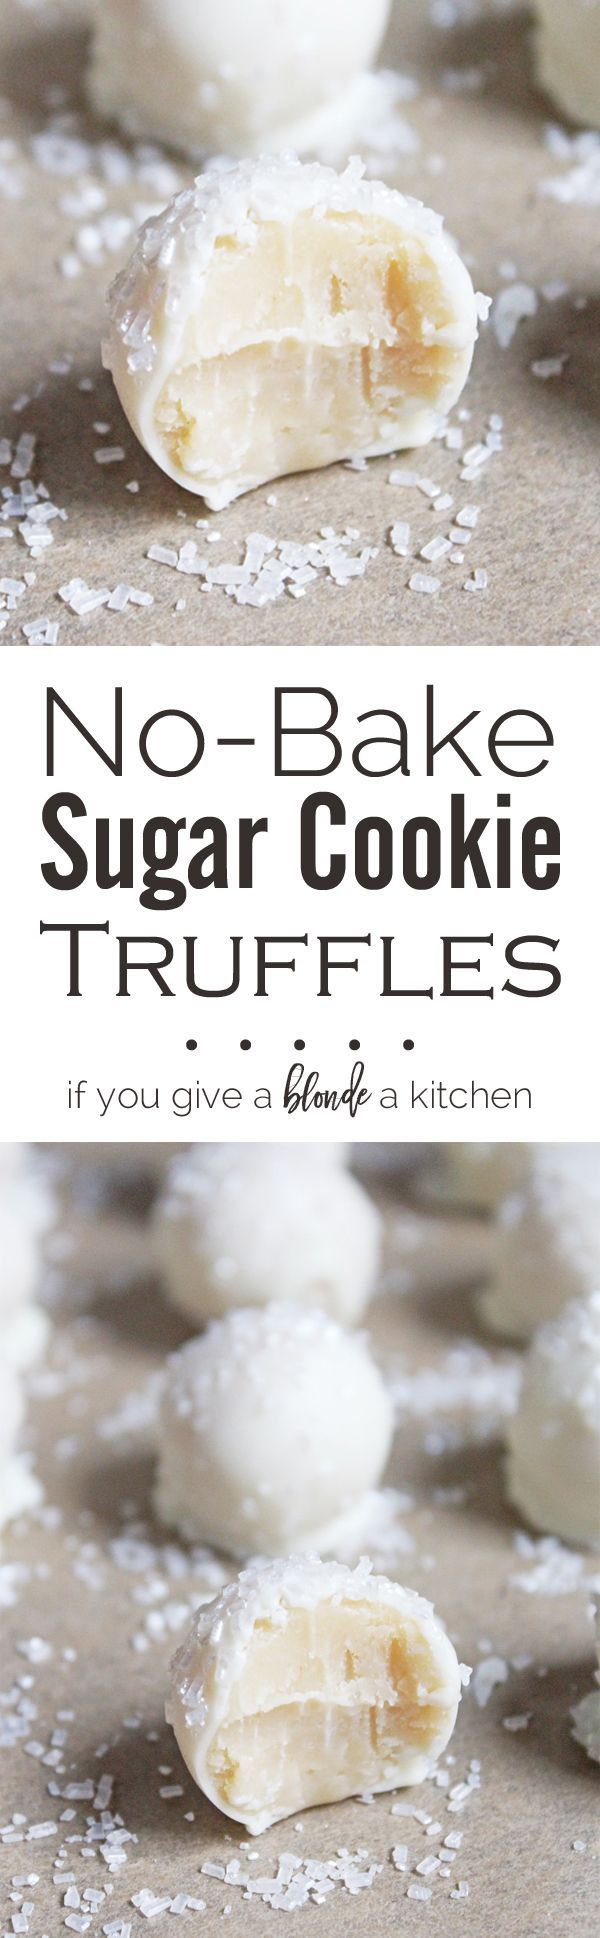 Sugar Cookie Truffles - It's a no-bake recipe that uses sugar cookies, cream cheese, white chocolate and sprinkles! | If You Give a Blonde a Kitchen